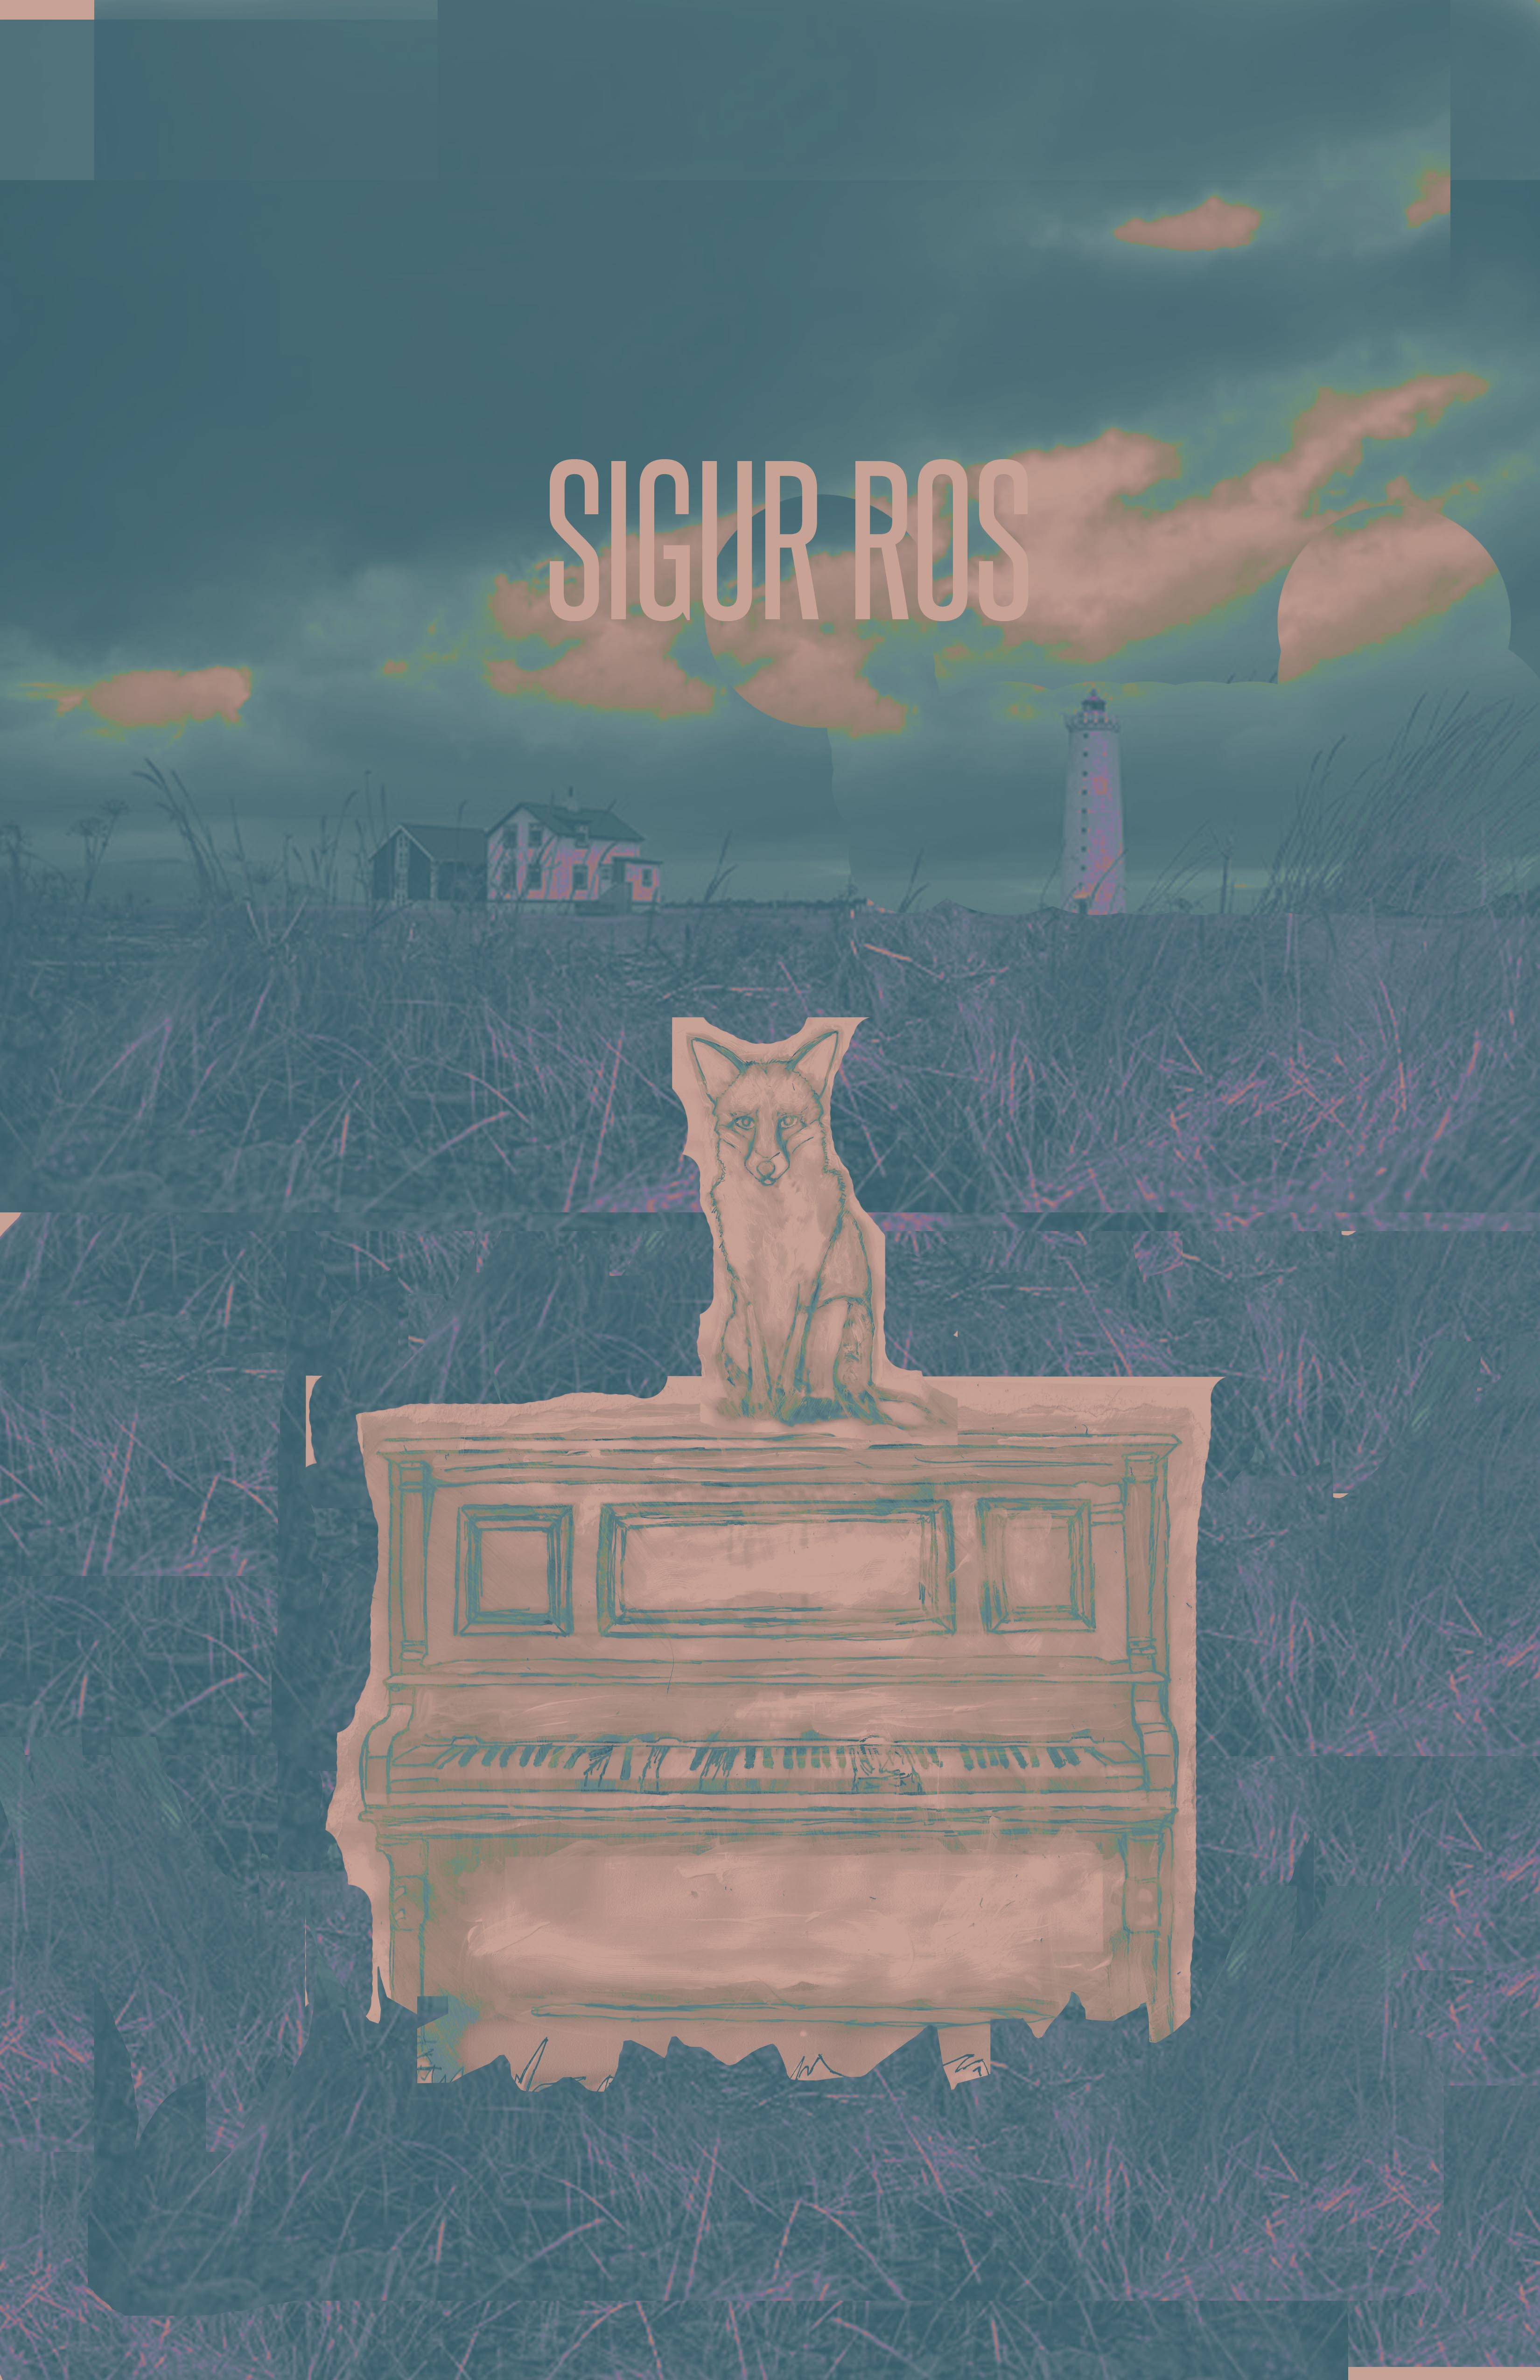 Sigur Ros Gig Poster  - image 8 - student project